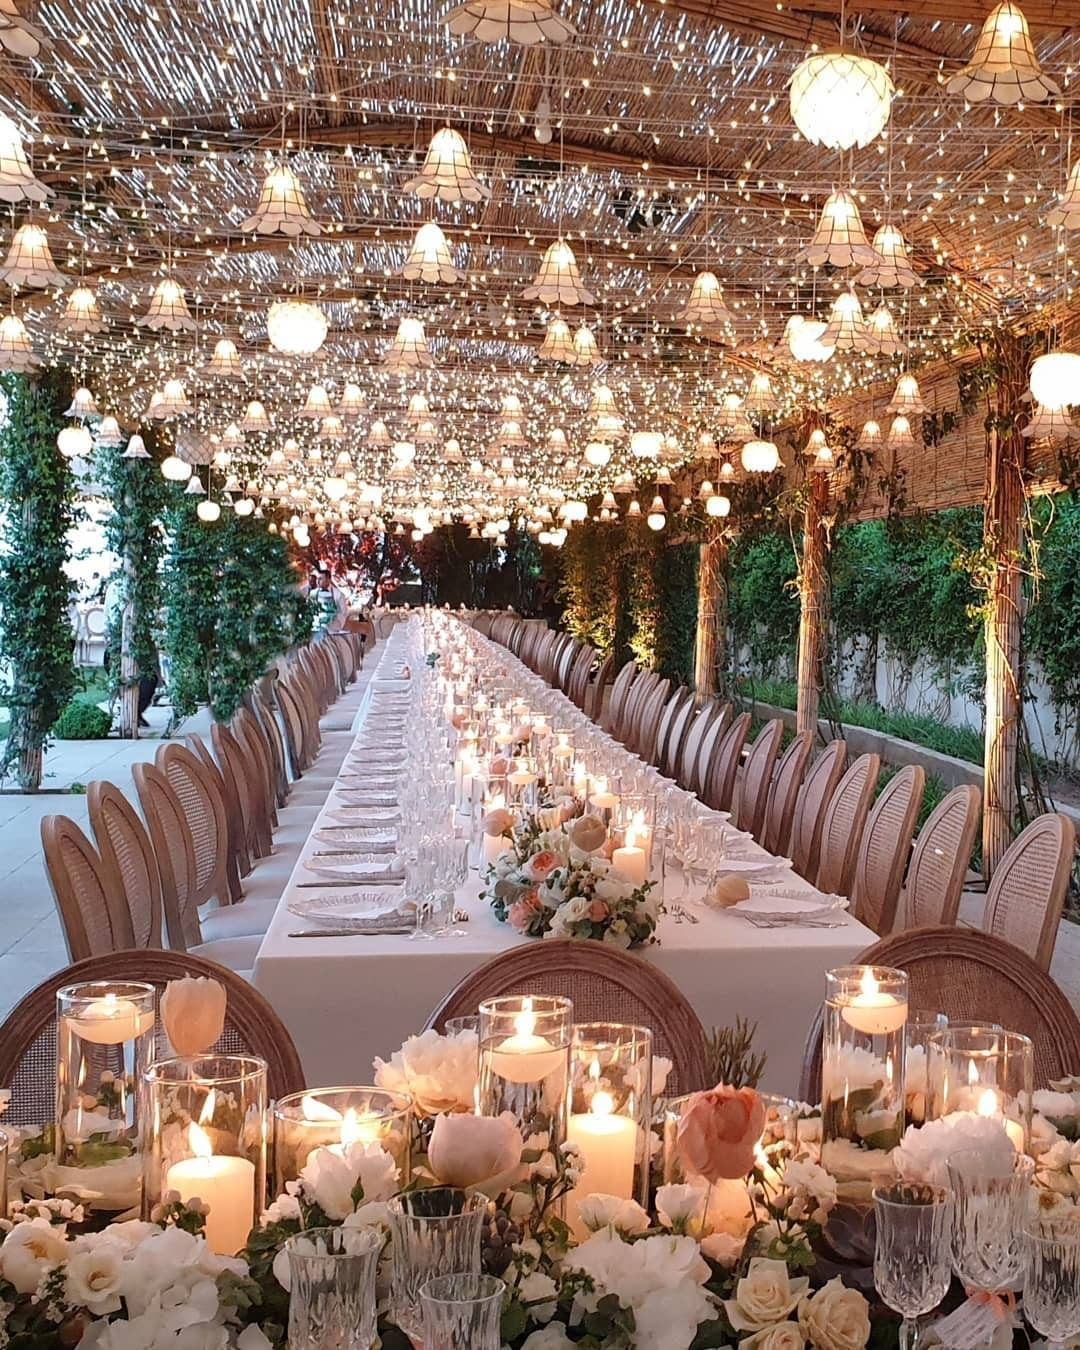 """Photo of Miss To Mrs™ Subscription Box on Instagram: """"Magical wedding decor! ✨ Who's inspired? Leave a comment below!👇🏻 . Engaged?💍Subscribe to your @misstomrsbox, a curated monthly box full…"""""""